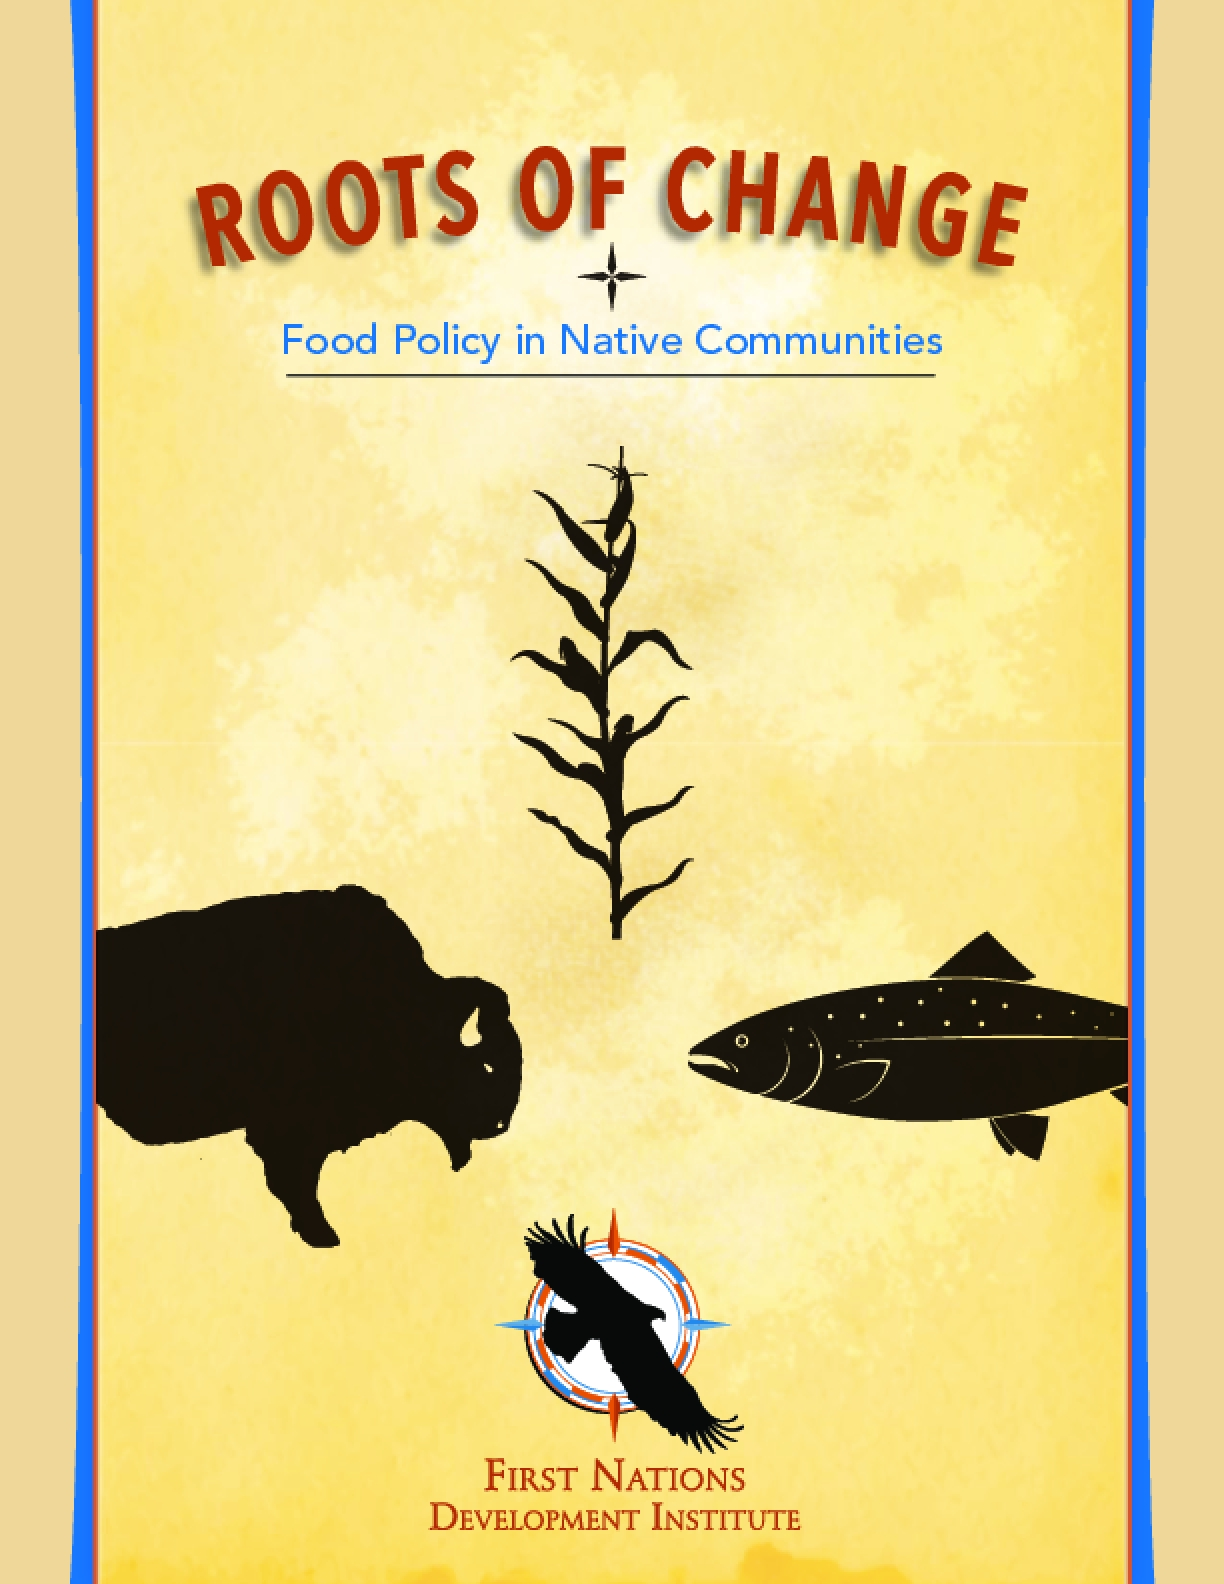 Roots of Change: Food Policy in Native Communities